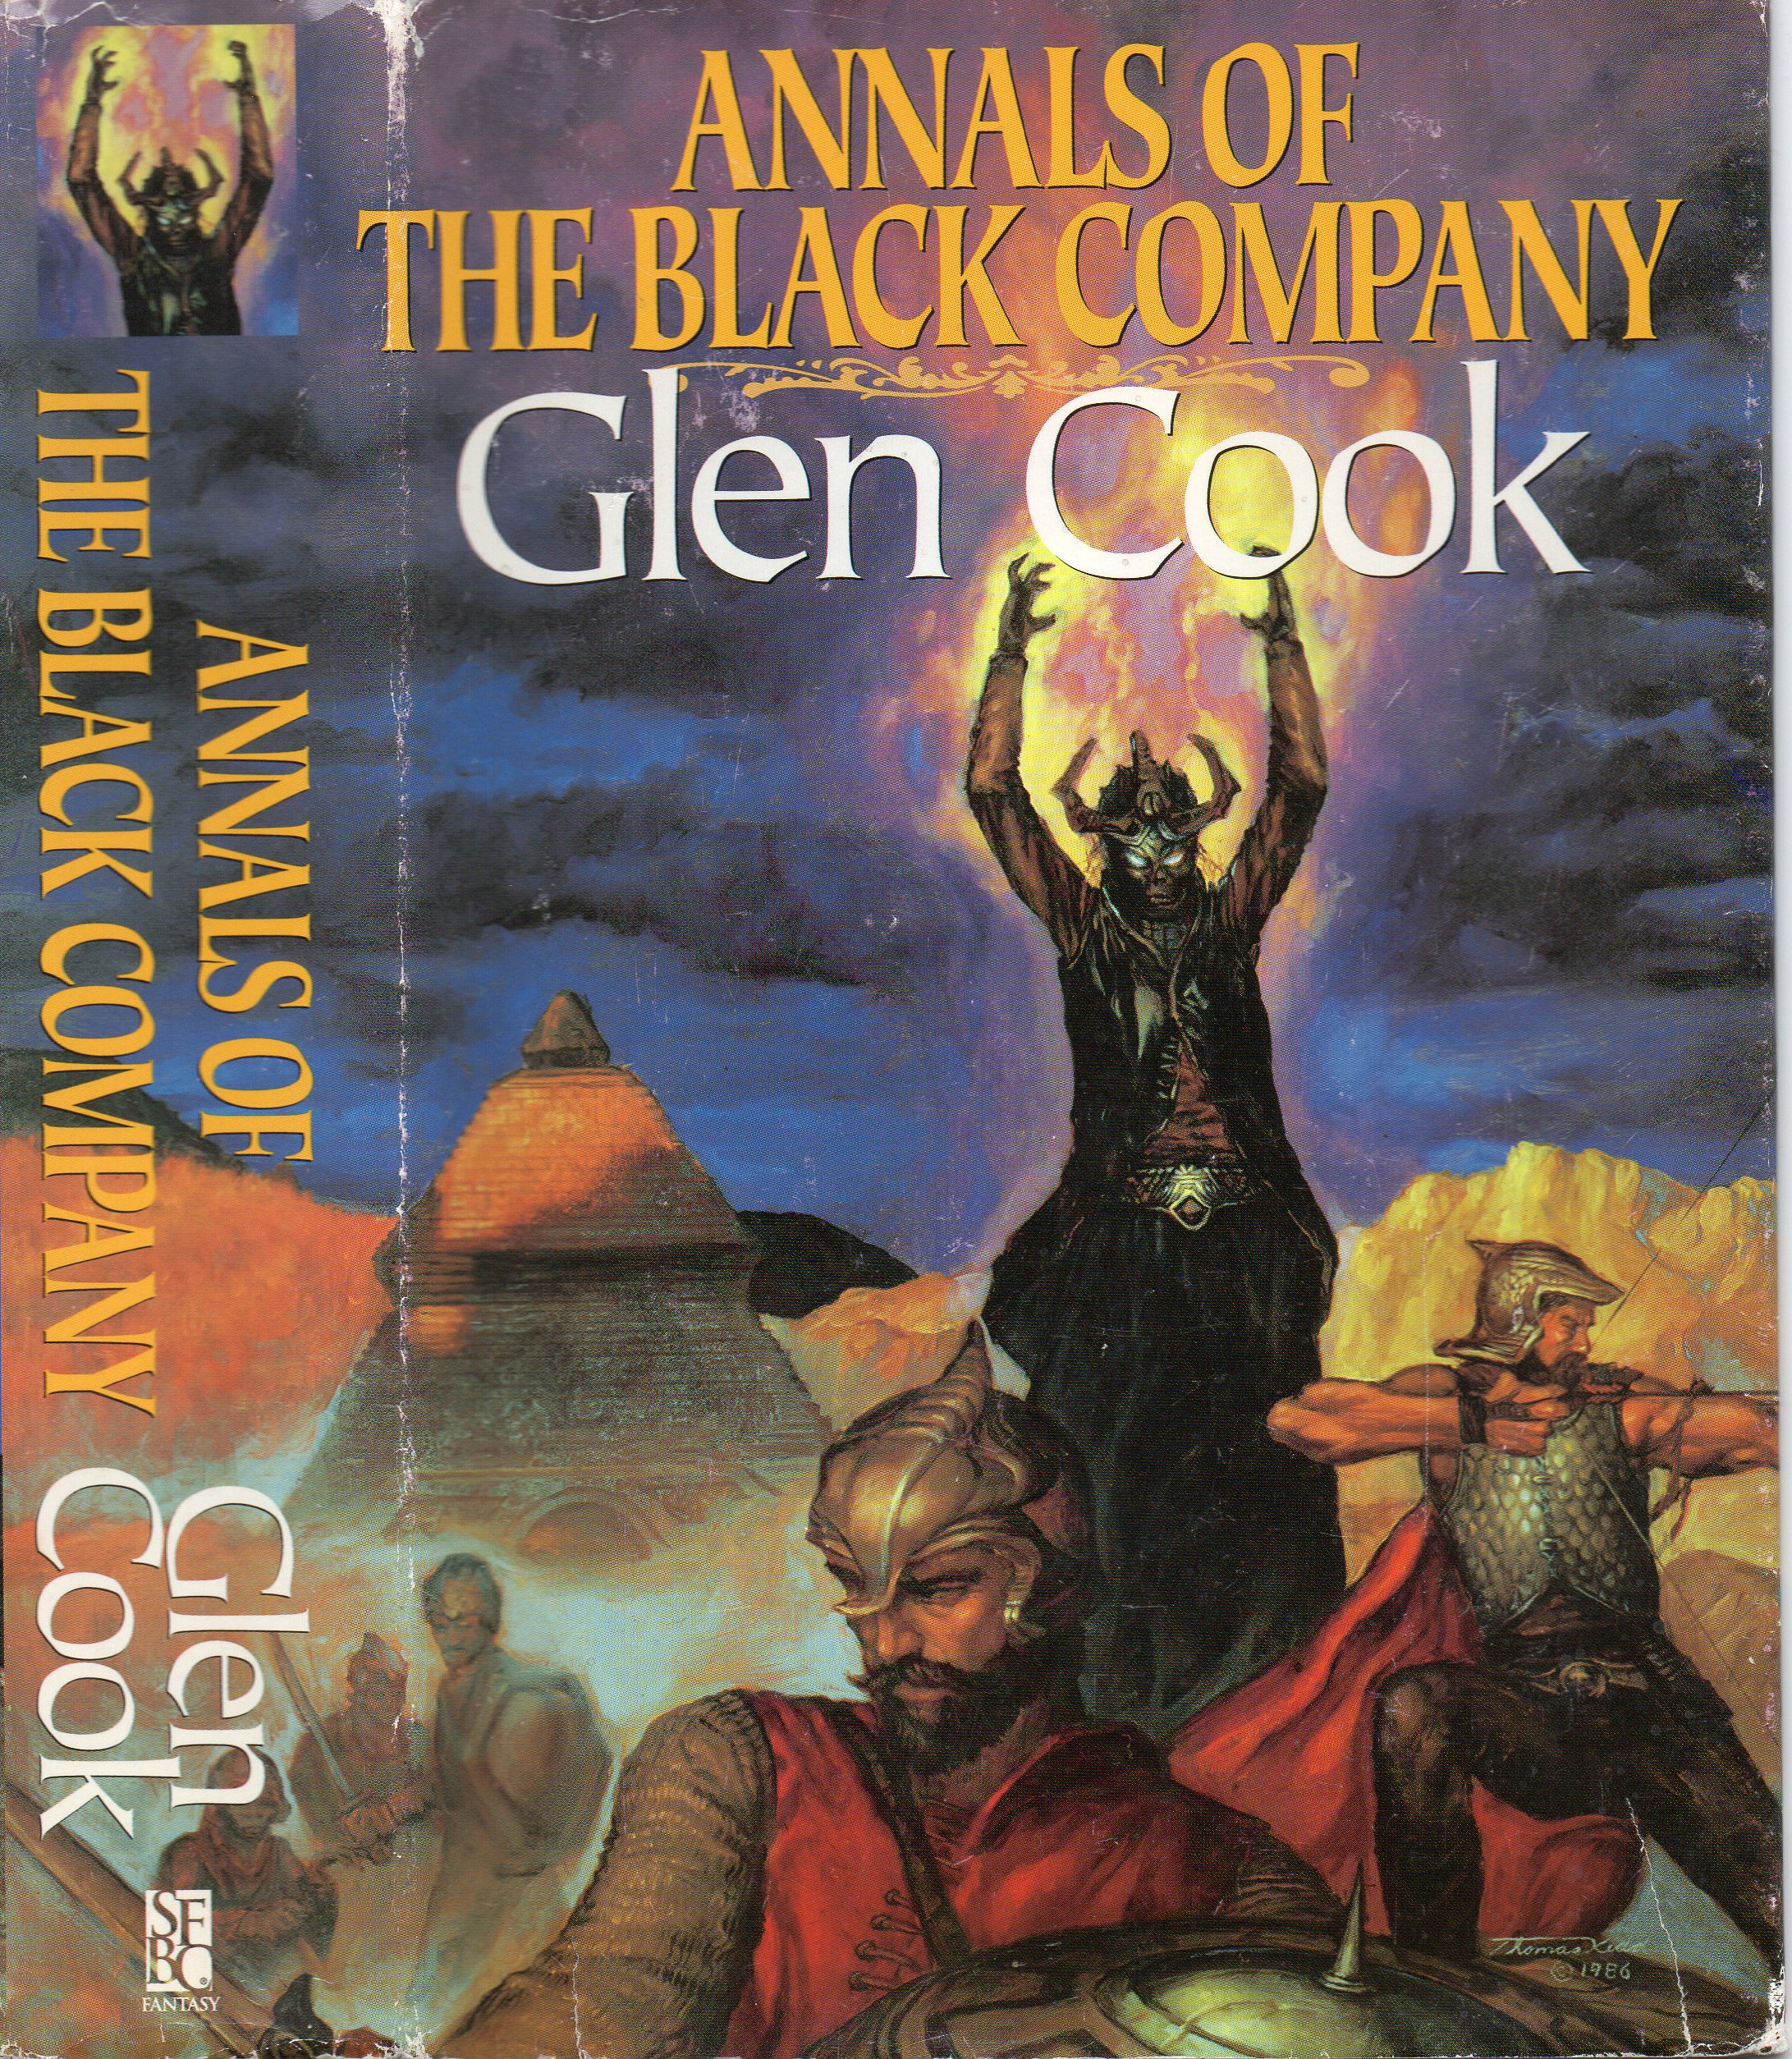 Annals of the Black Company (1986)